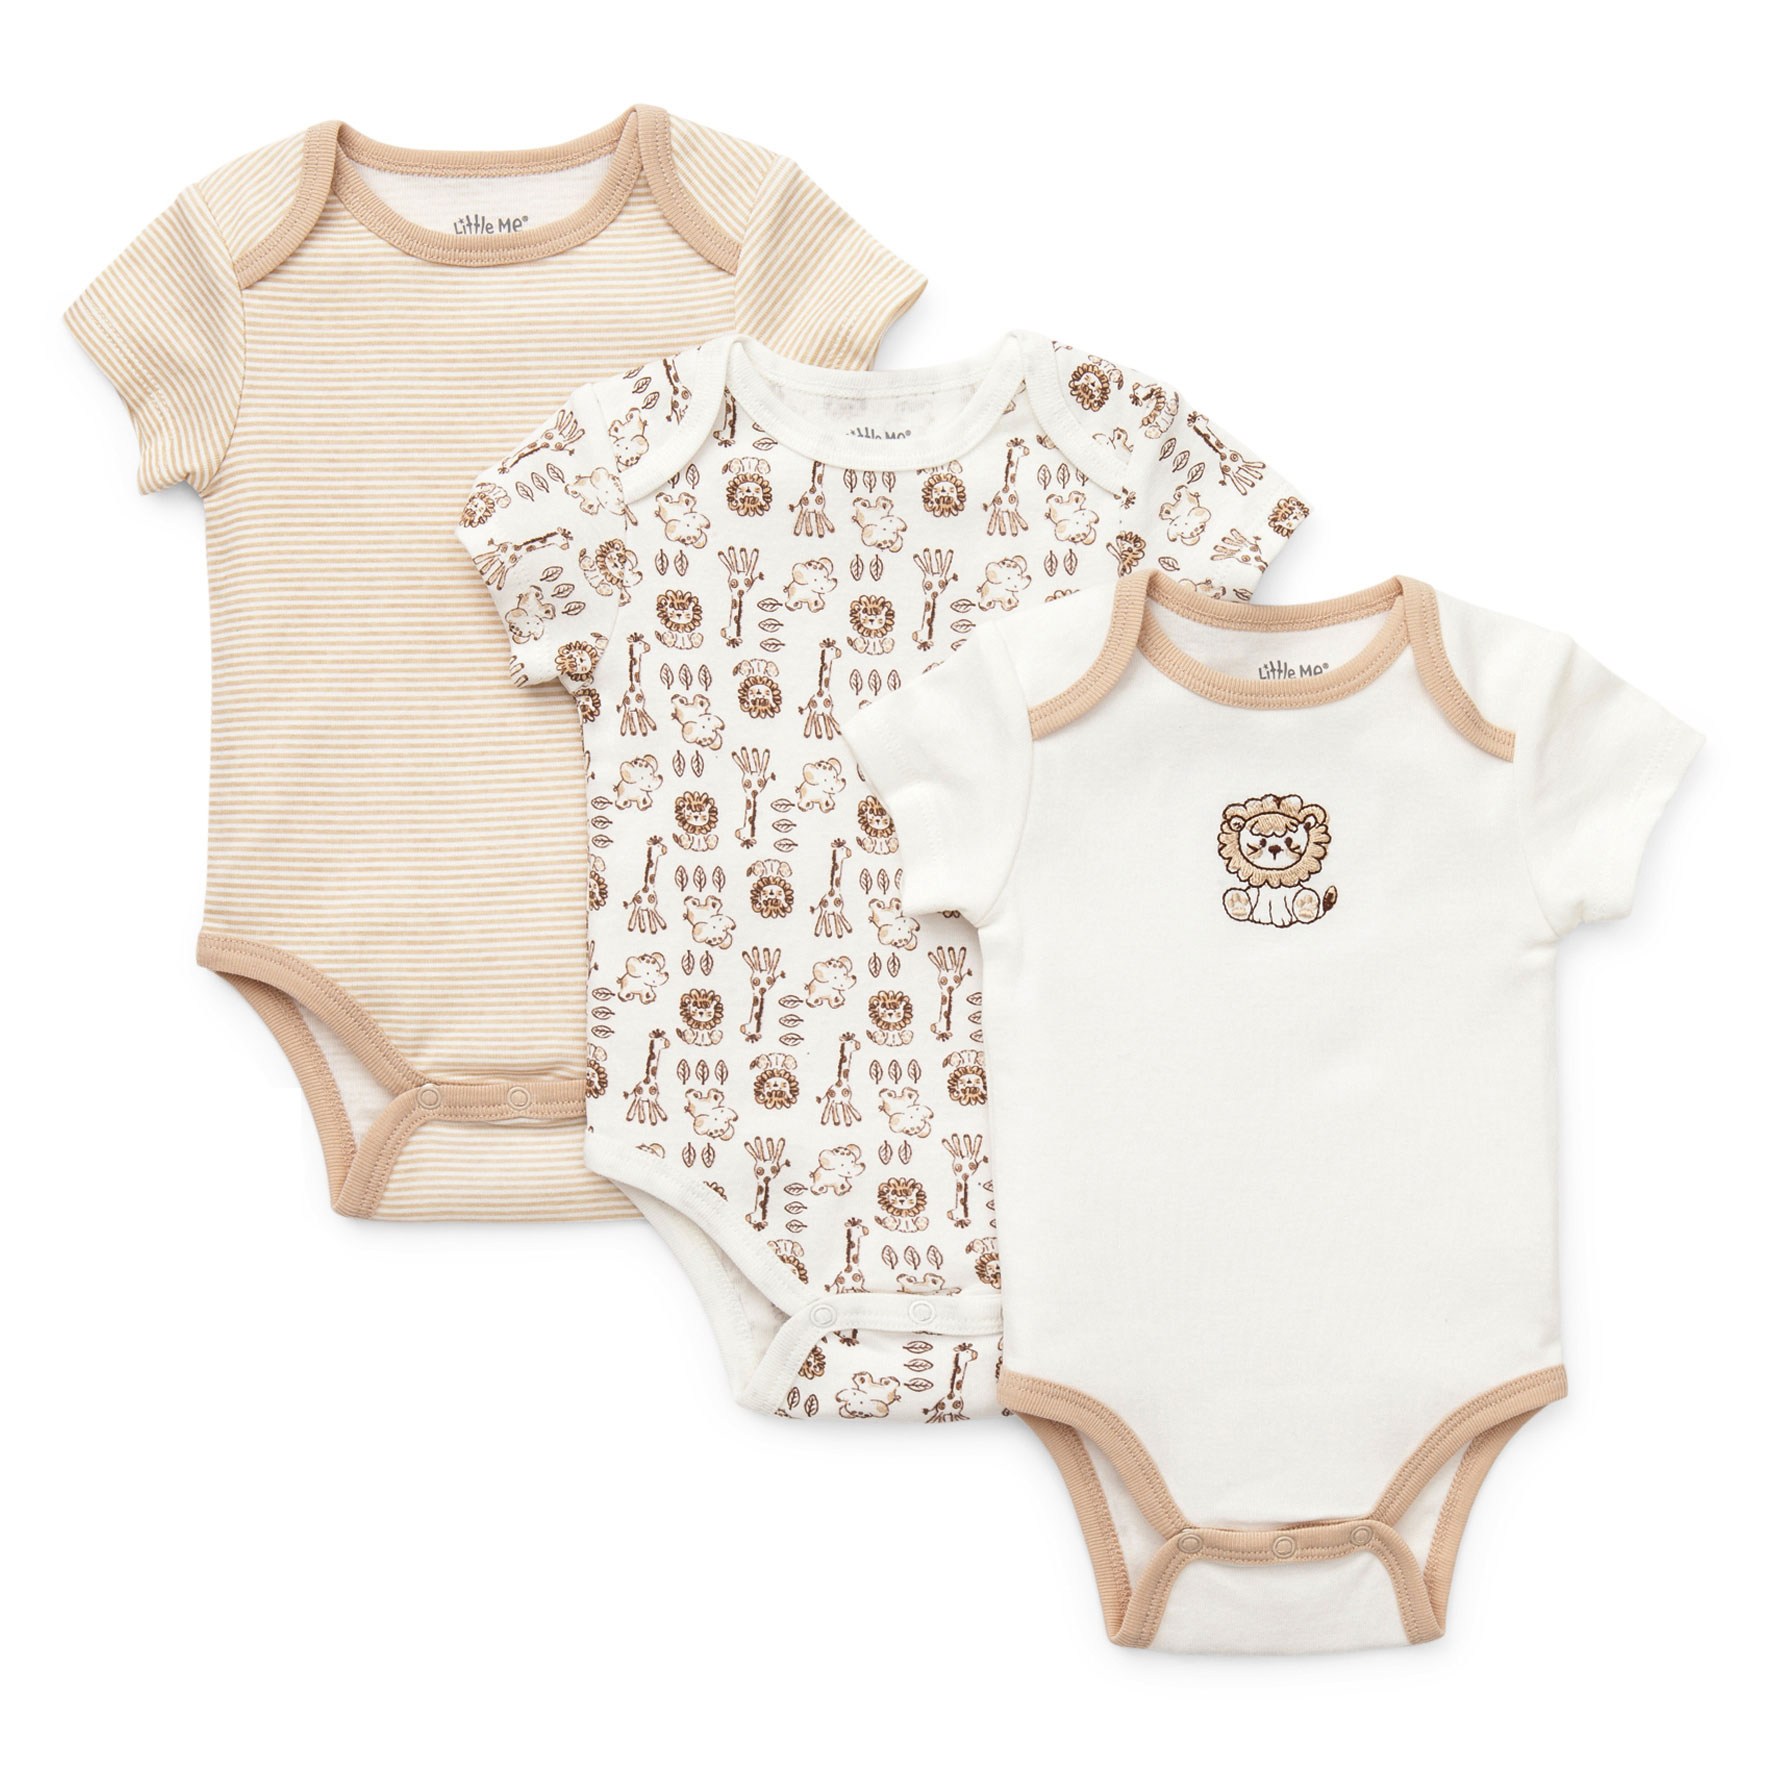 Little Me Baby Lion Safari Animal Print and Solid 3 Pack of Short Sleeve Baby Bodysuit Creepers For Boys - Beige and Off-White- 3 Months